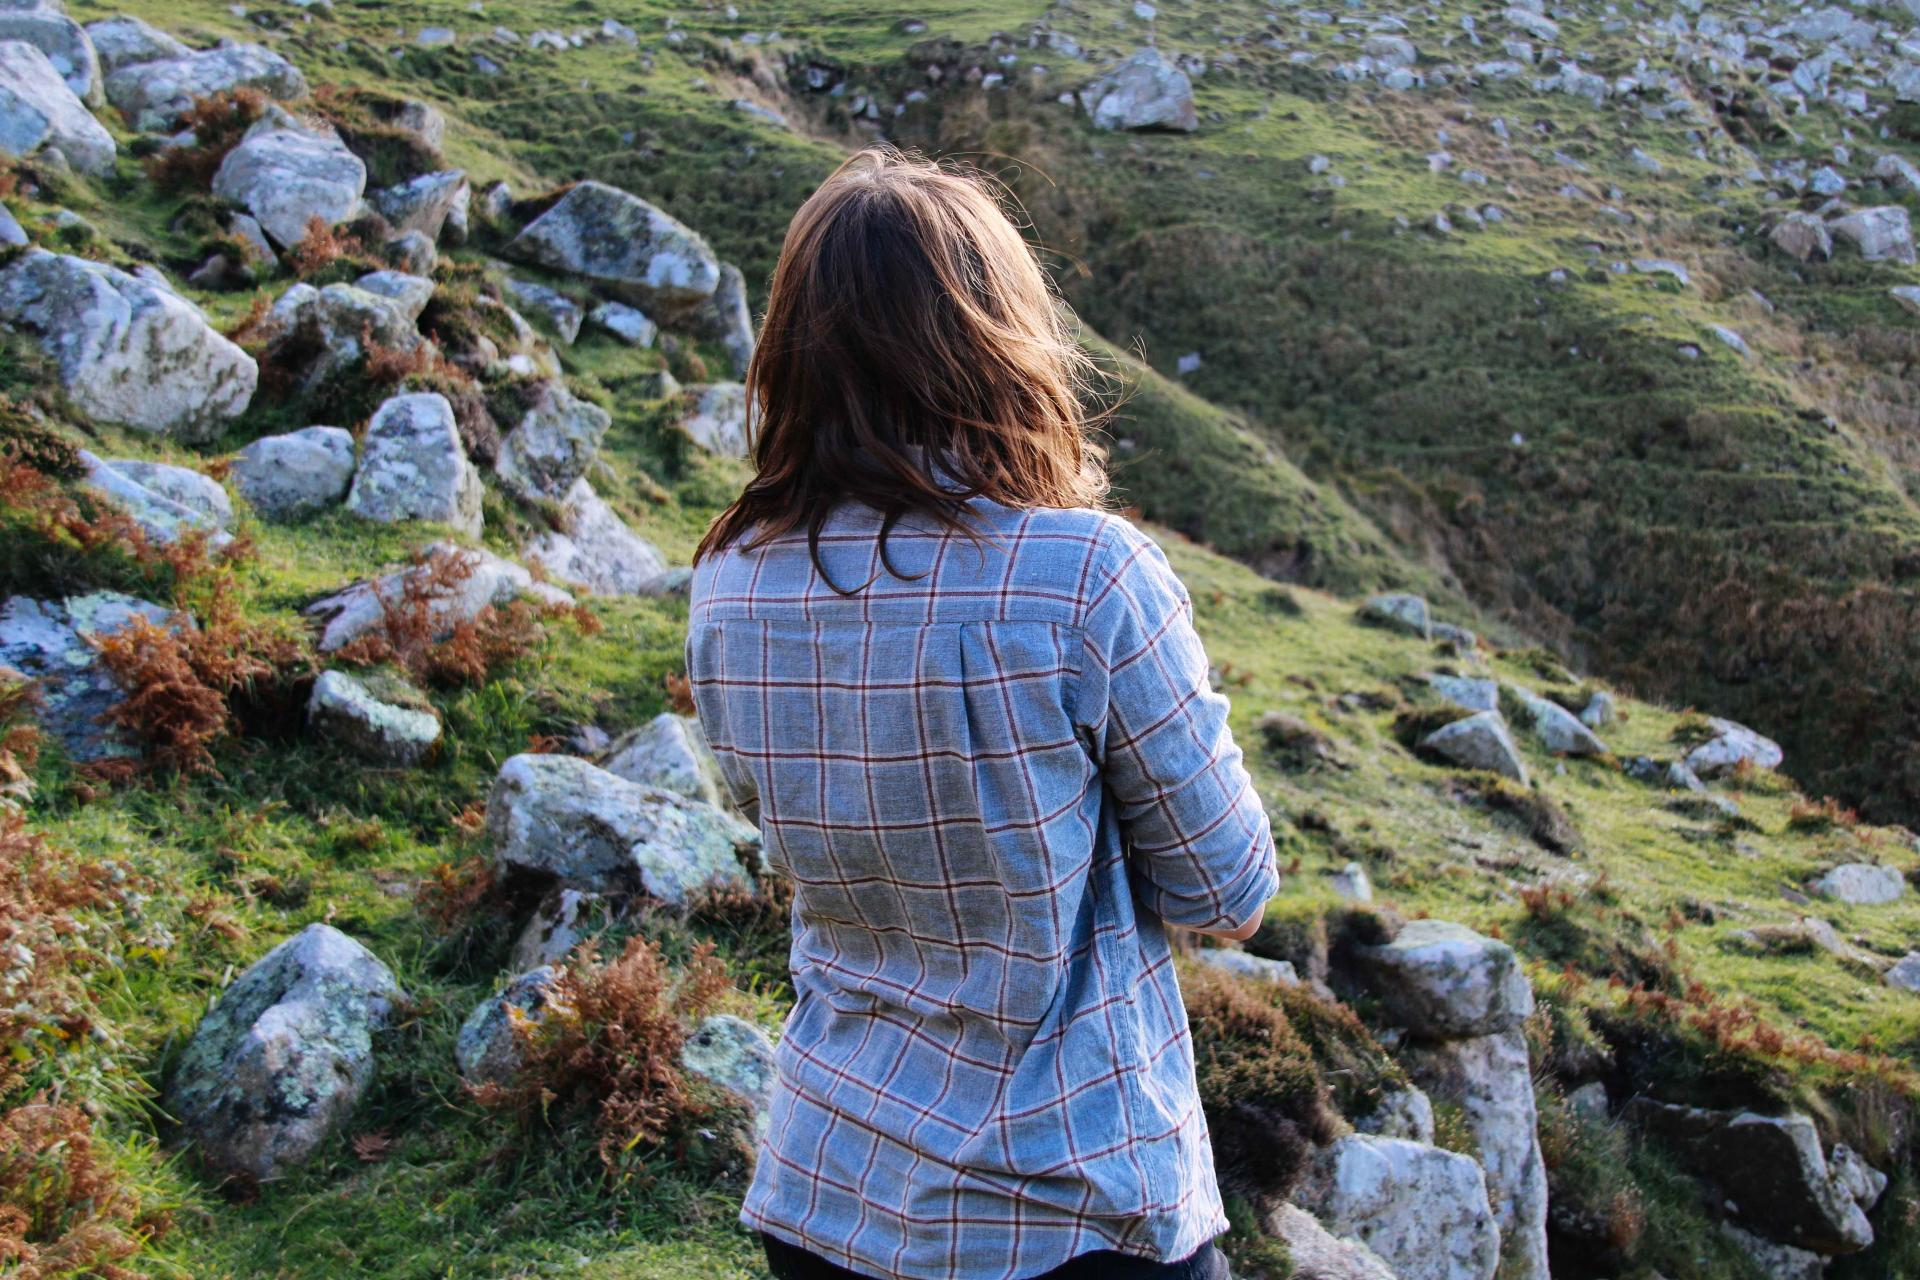 UNIQLO Heattech - how to layer up for autumn hikes